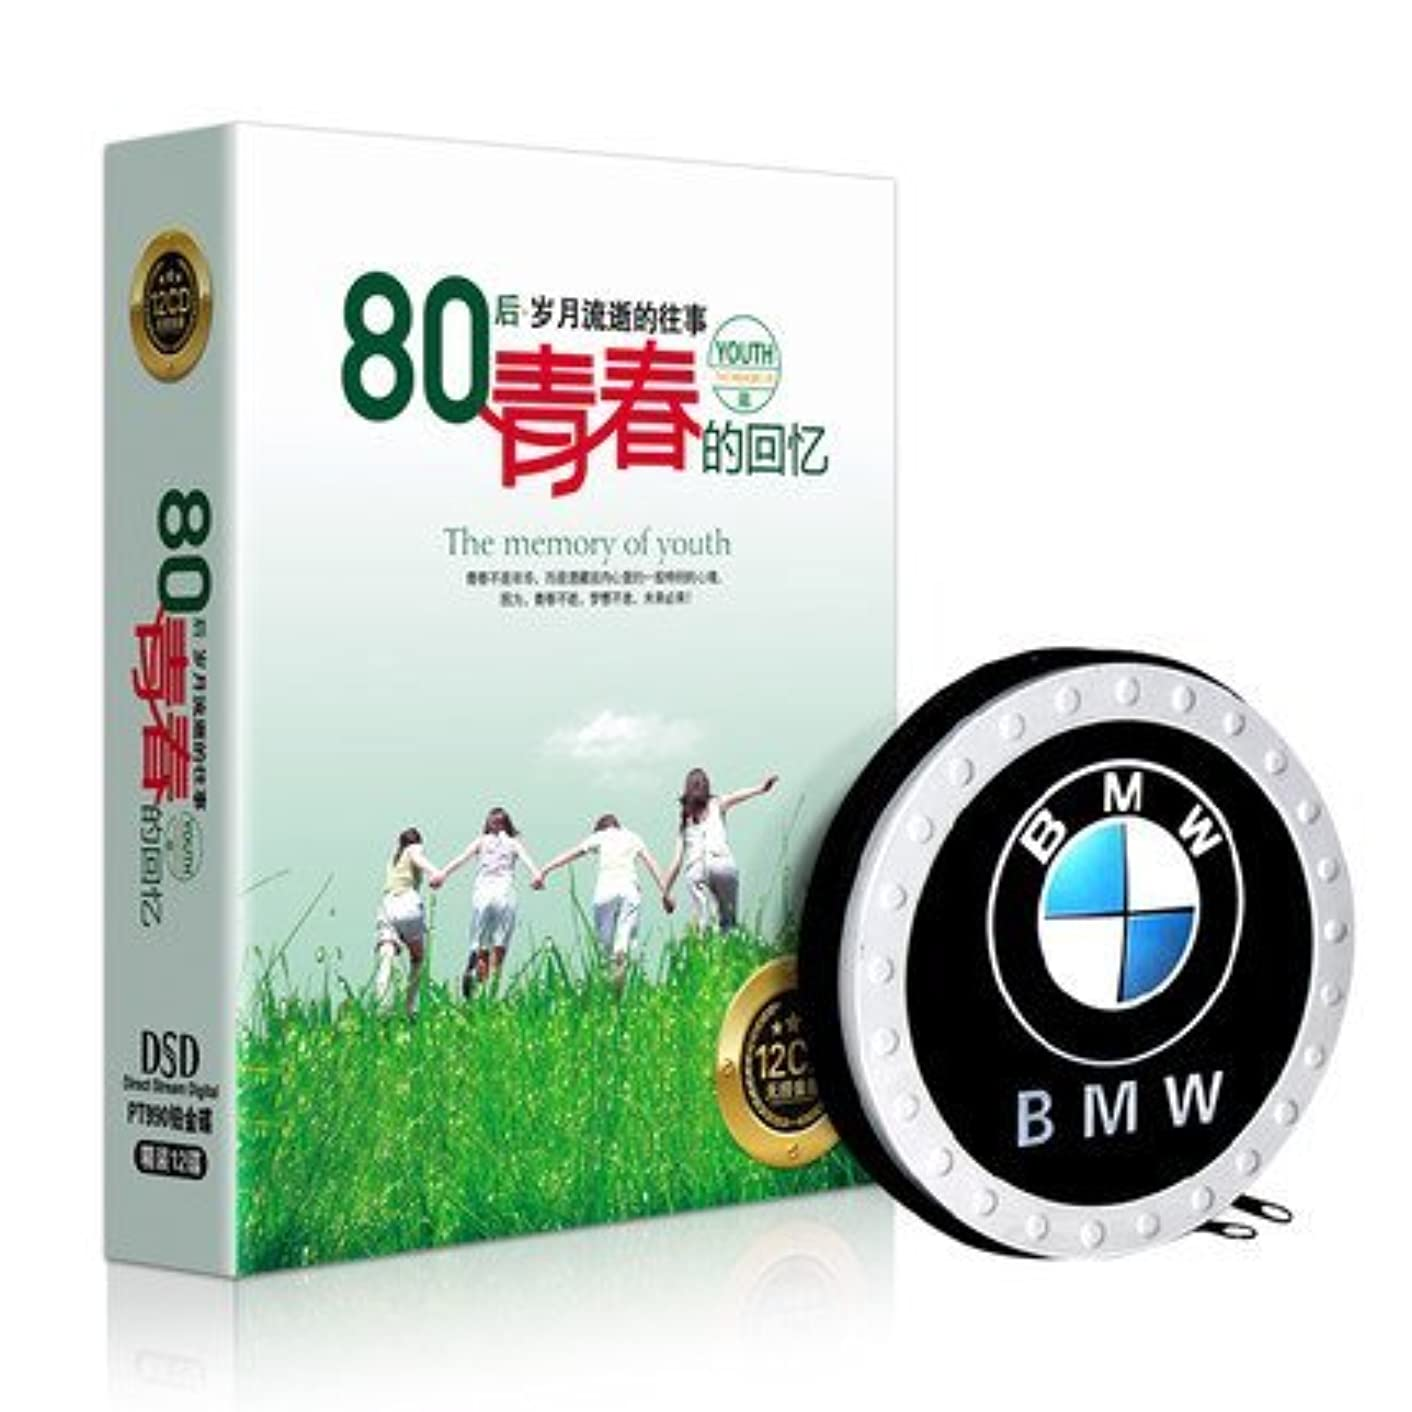 China 80s Generation Classic Songs 12CDs set / 80 Hou / The memory of youth